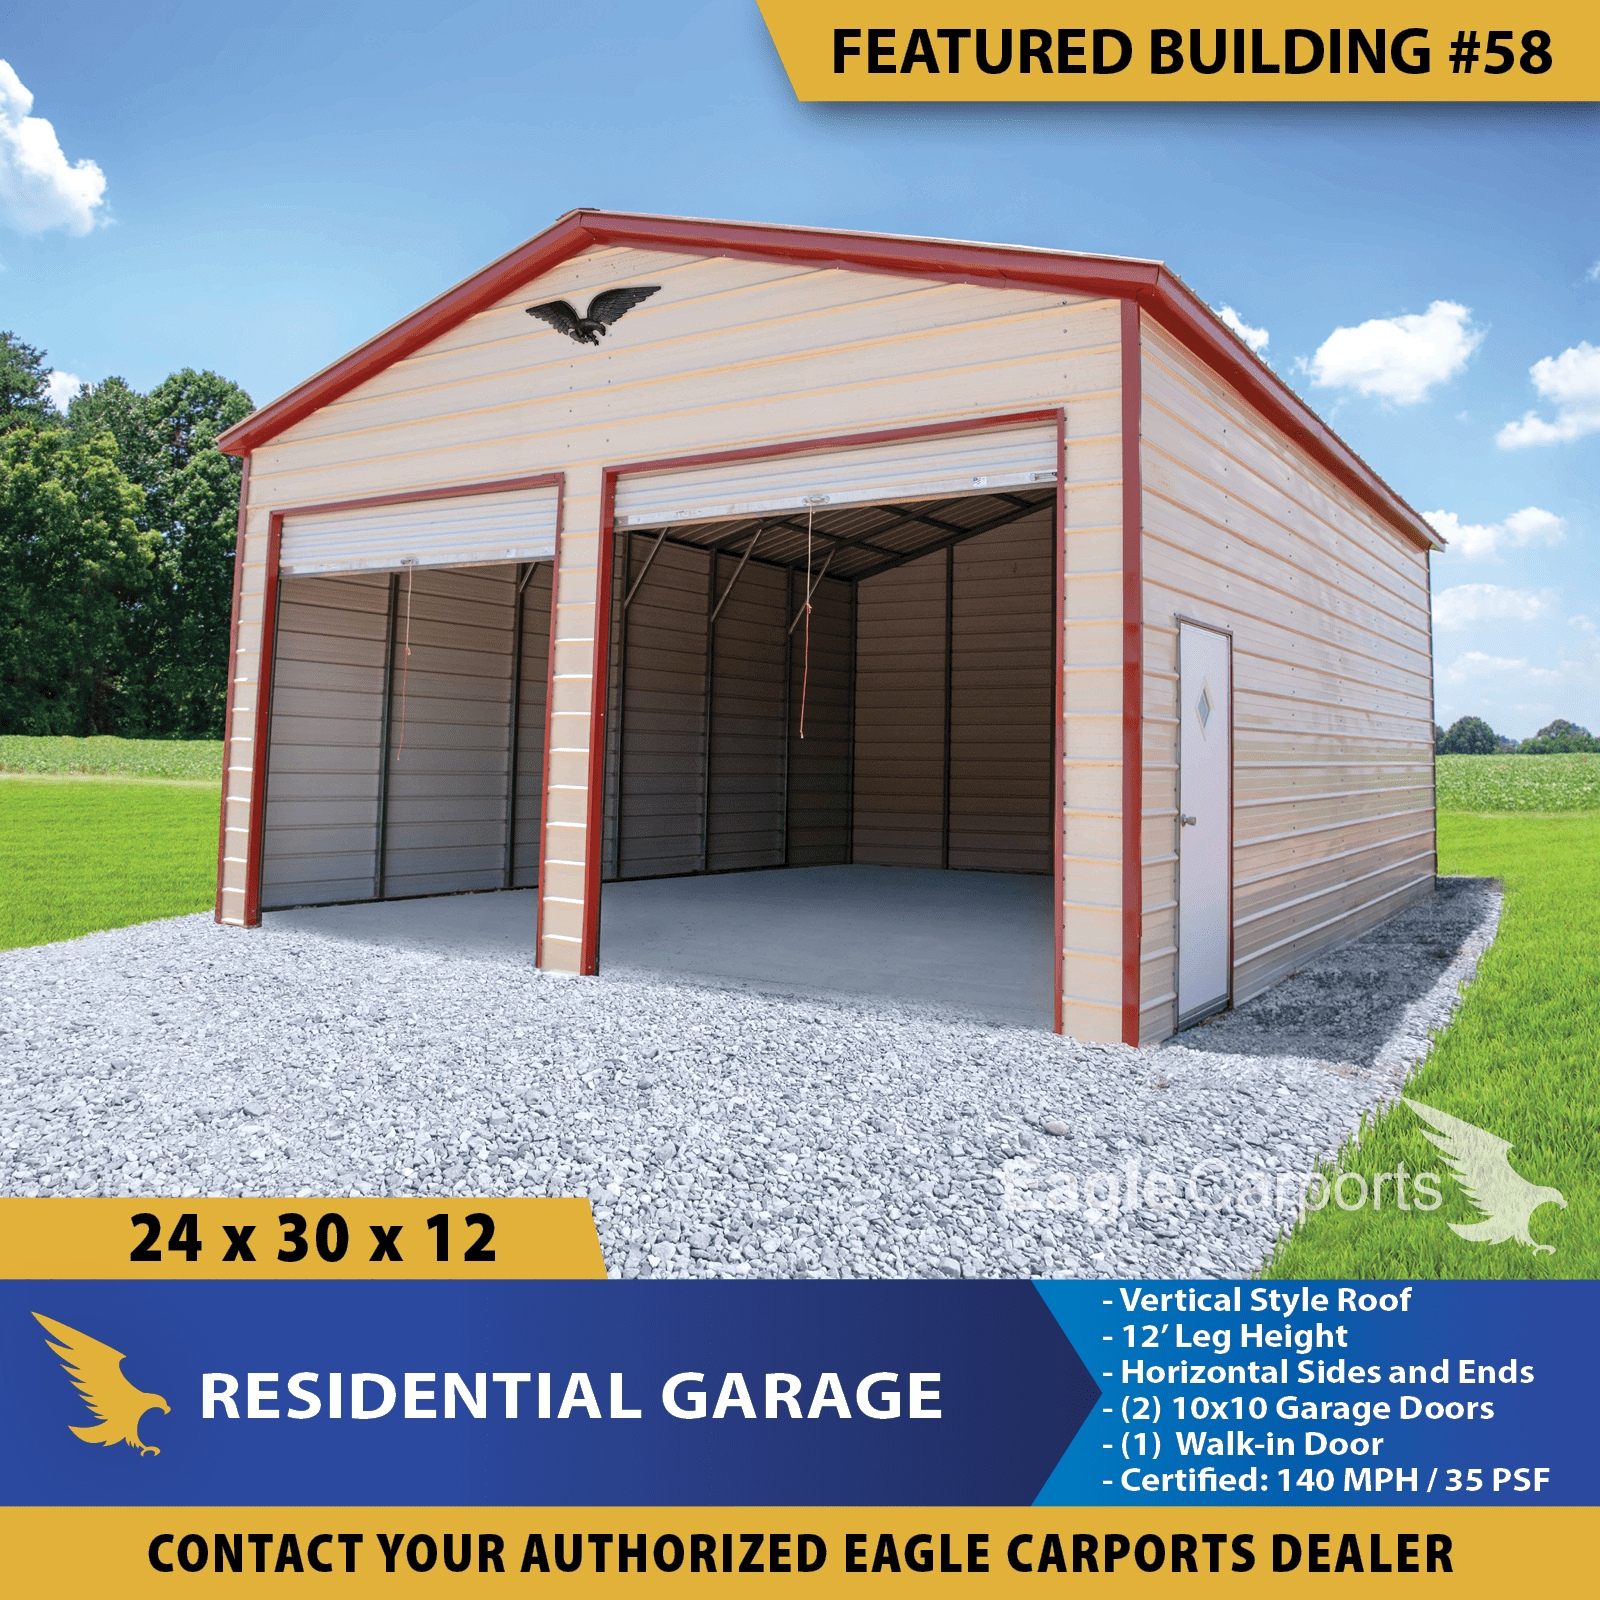 24x30x12 Residental Garage Is Built With 12 Side Leg Height 2 10x10 Garage Doors 1 Walk In Door Concrete Ancho In 2020 Portable Buildings Building Garage Doors